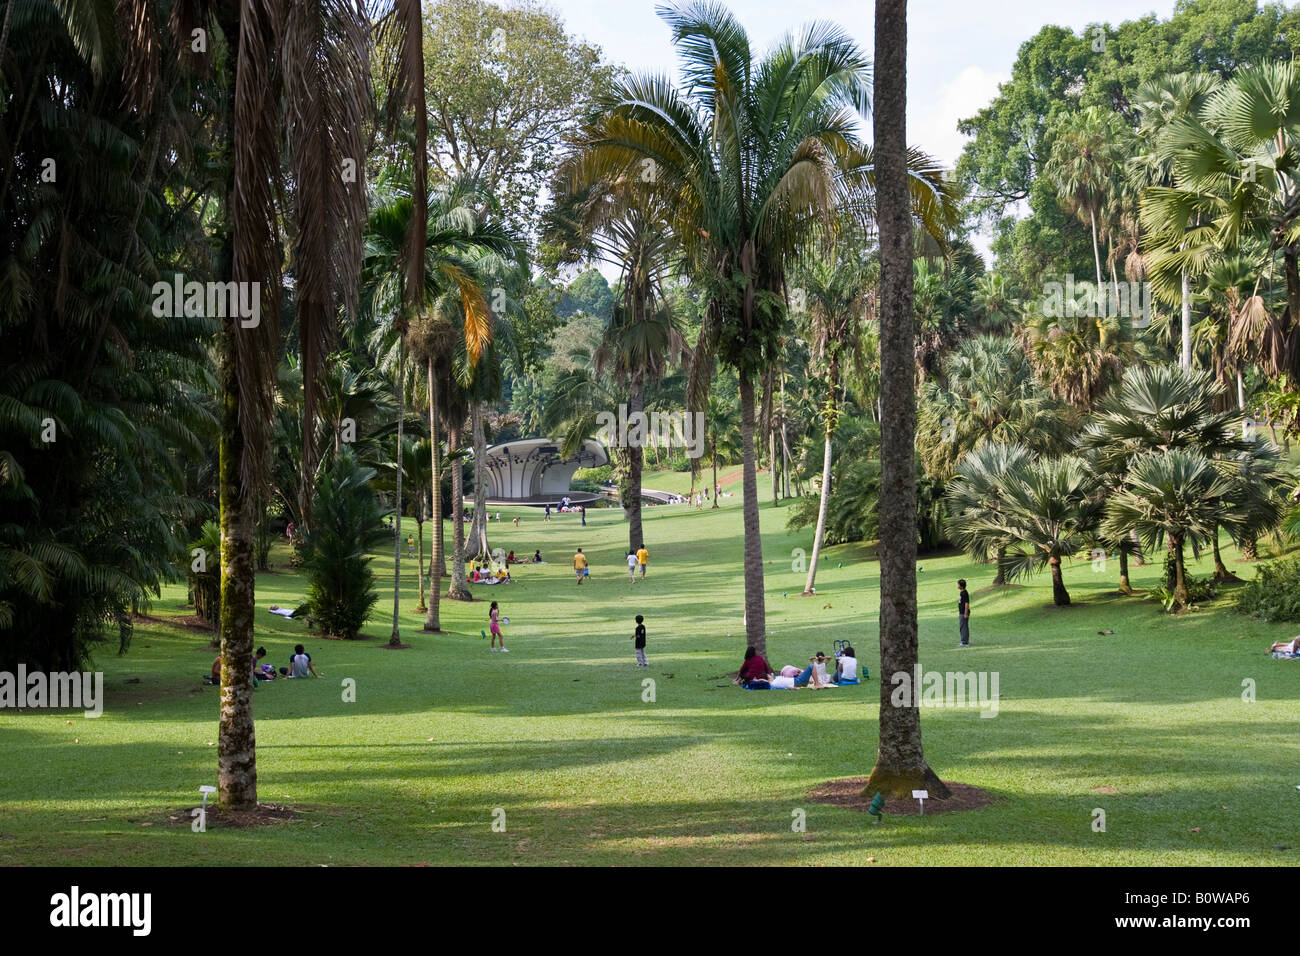 Young people enjoying the parkland of the Botanical Gardens, National Orchard Garden in Singapore, Southeast Asia - Stock Image